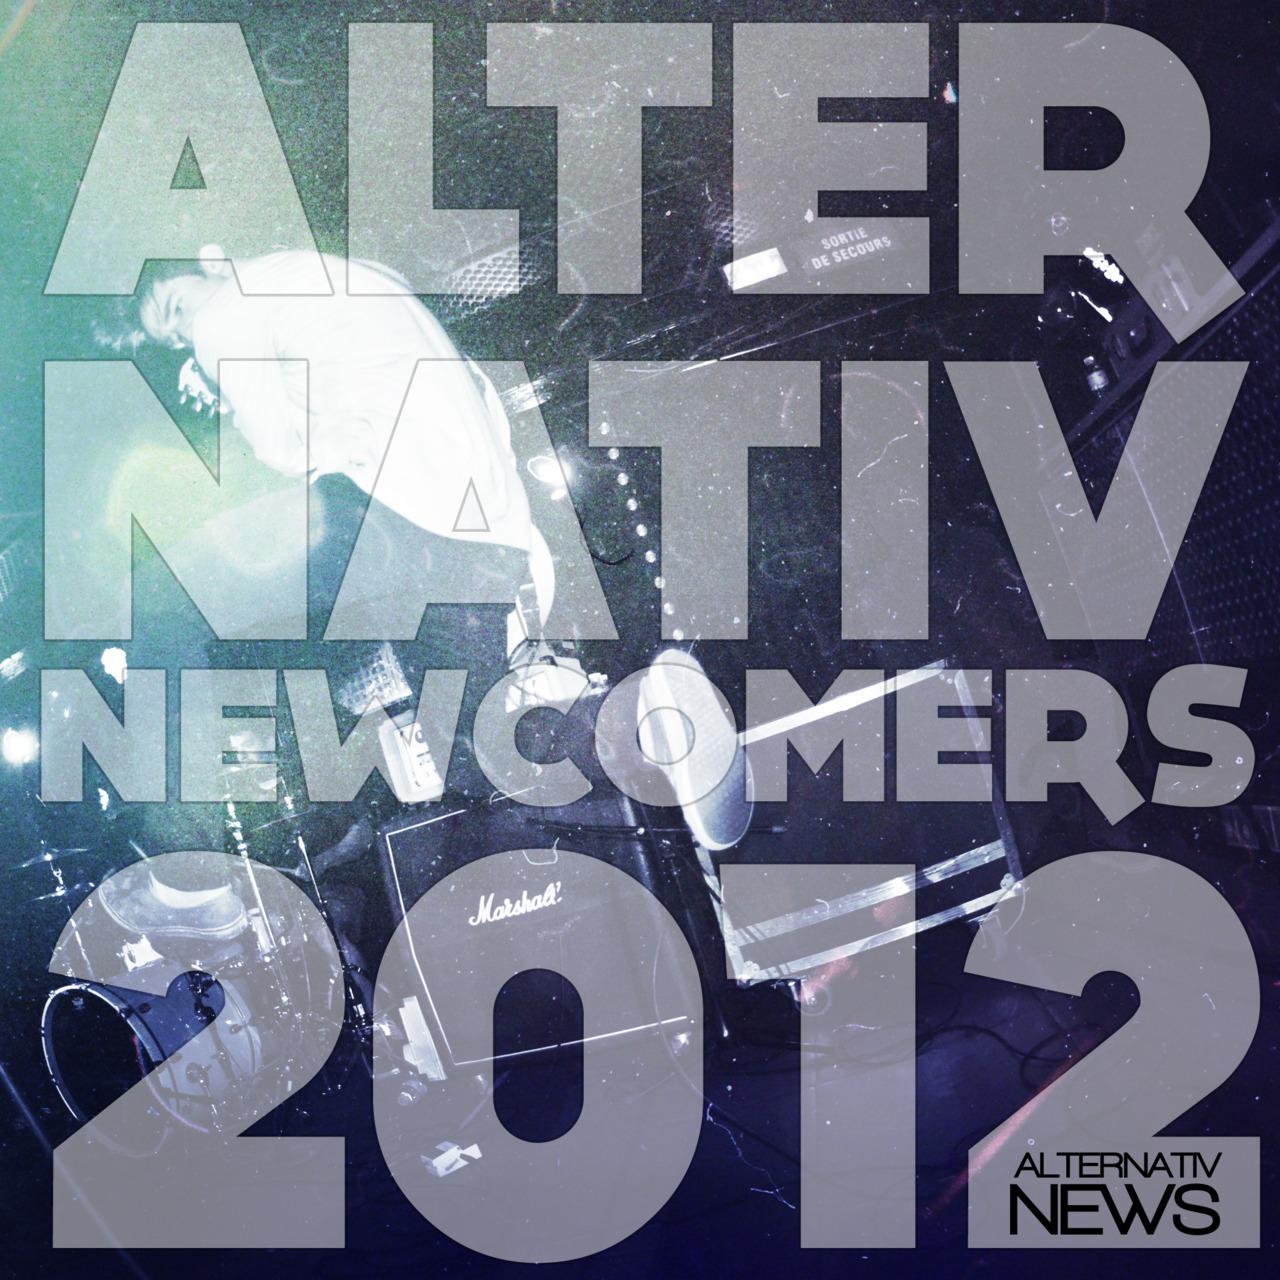 Download this!!  Awesome compilation with a ton of our friends and bands we dig… thisisapo: ALTERNETIV NEWCOMERS 2012 Like every January, the website I'm part of (Alternativ News) made a free compilation of bands to look out for in 2012. This year's compliation features Title Fight, I Am The Avalanche, Sharks, Balance & Composure, Basement, Joyce Manor and many more. It's legal, free and you can download it here.